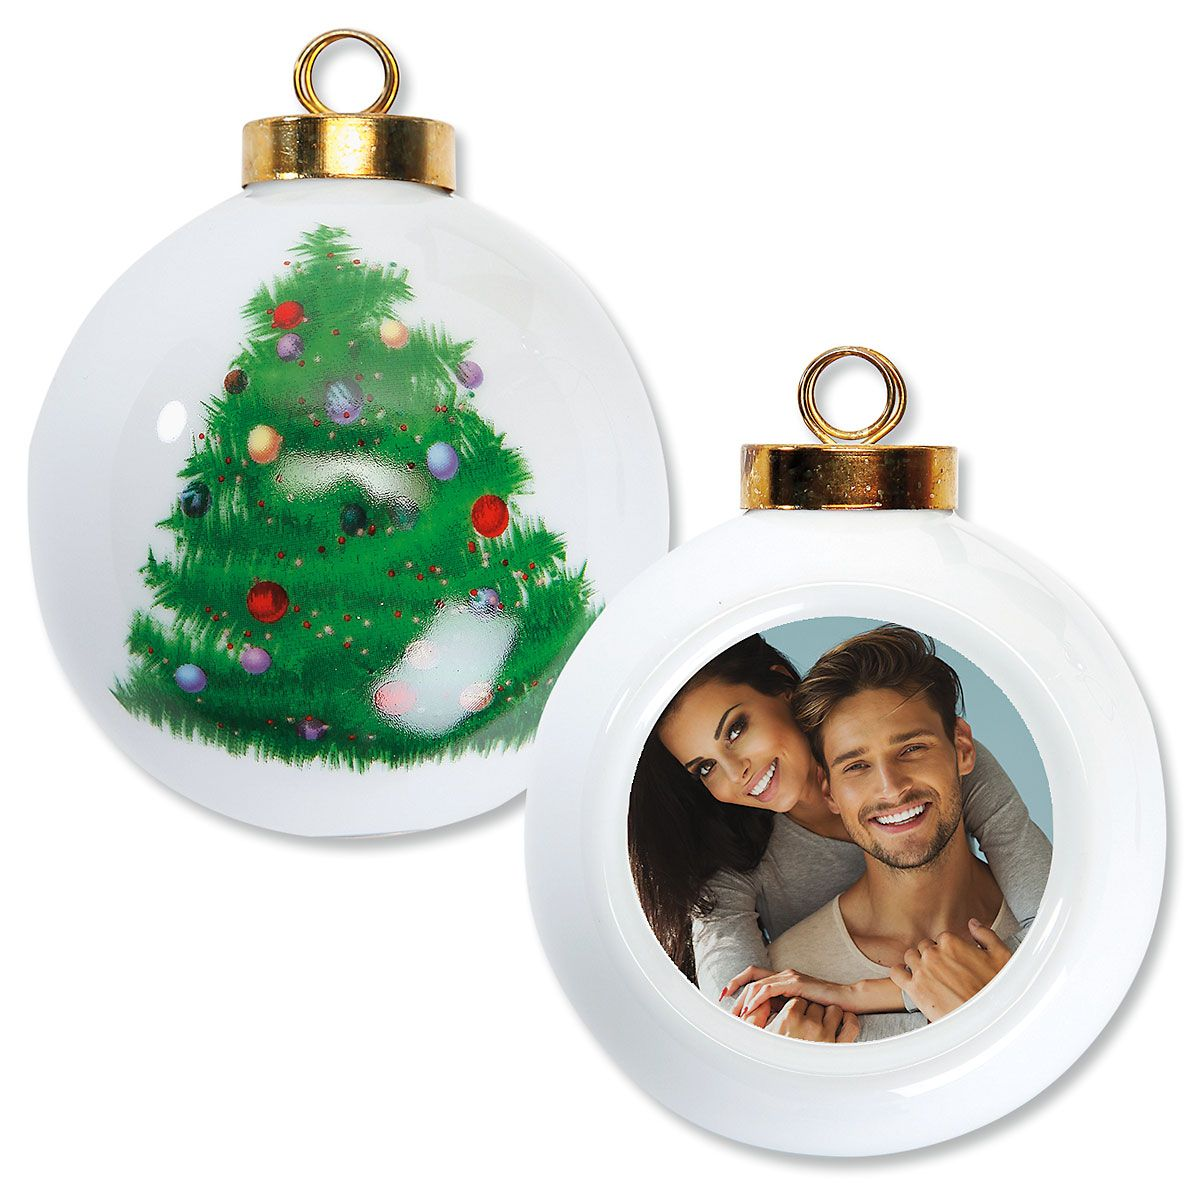 Full Custom Photo Round Tree Ornament